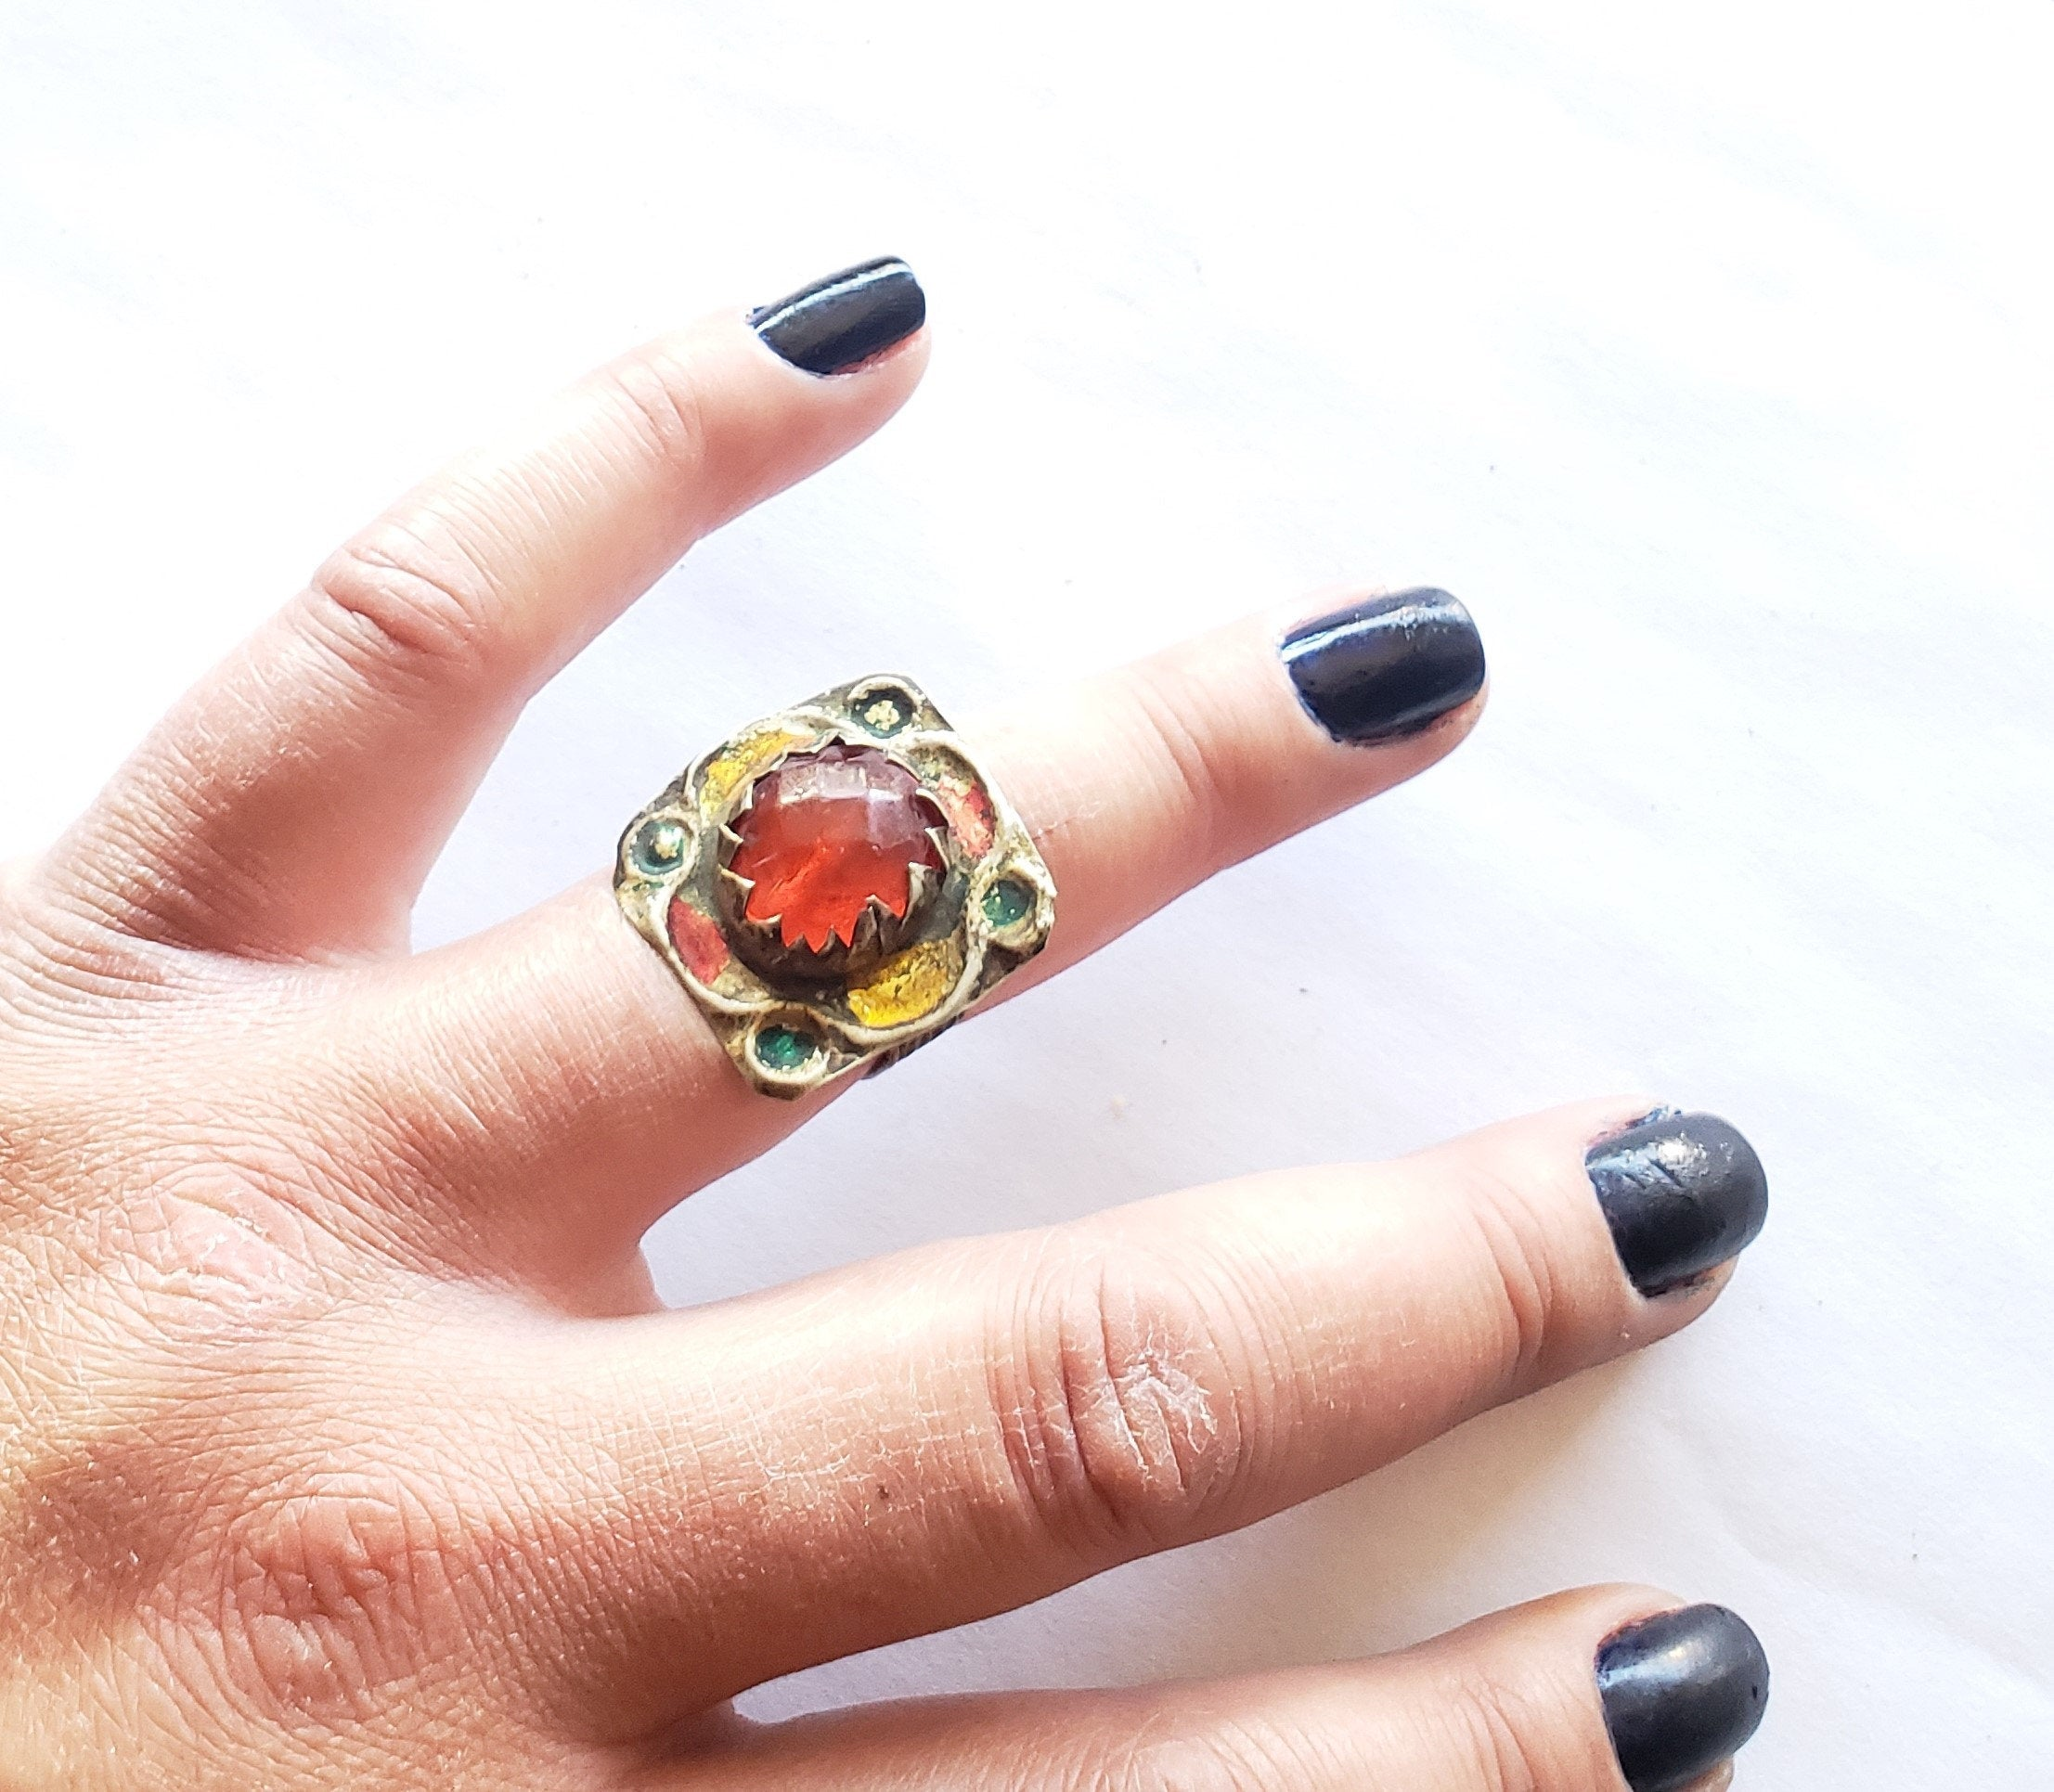 Berber Jewelry Antique Silver Berber Ring from Morocco with Vintage coin Bank Tuareg African Ring Tribal Silver ring Berber Ring Rare Coin